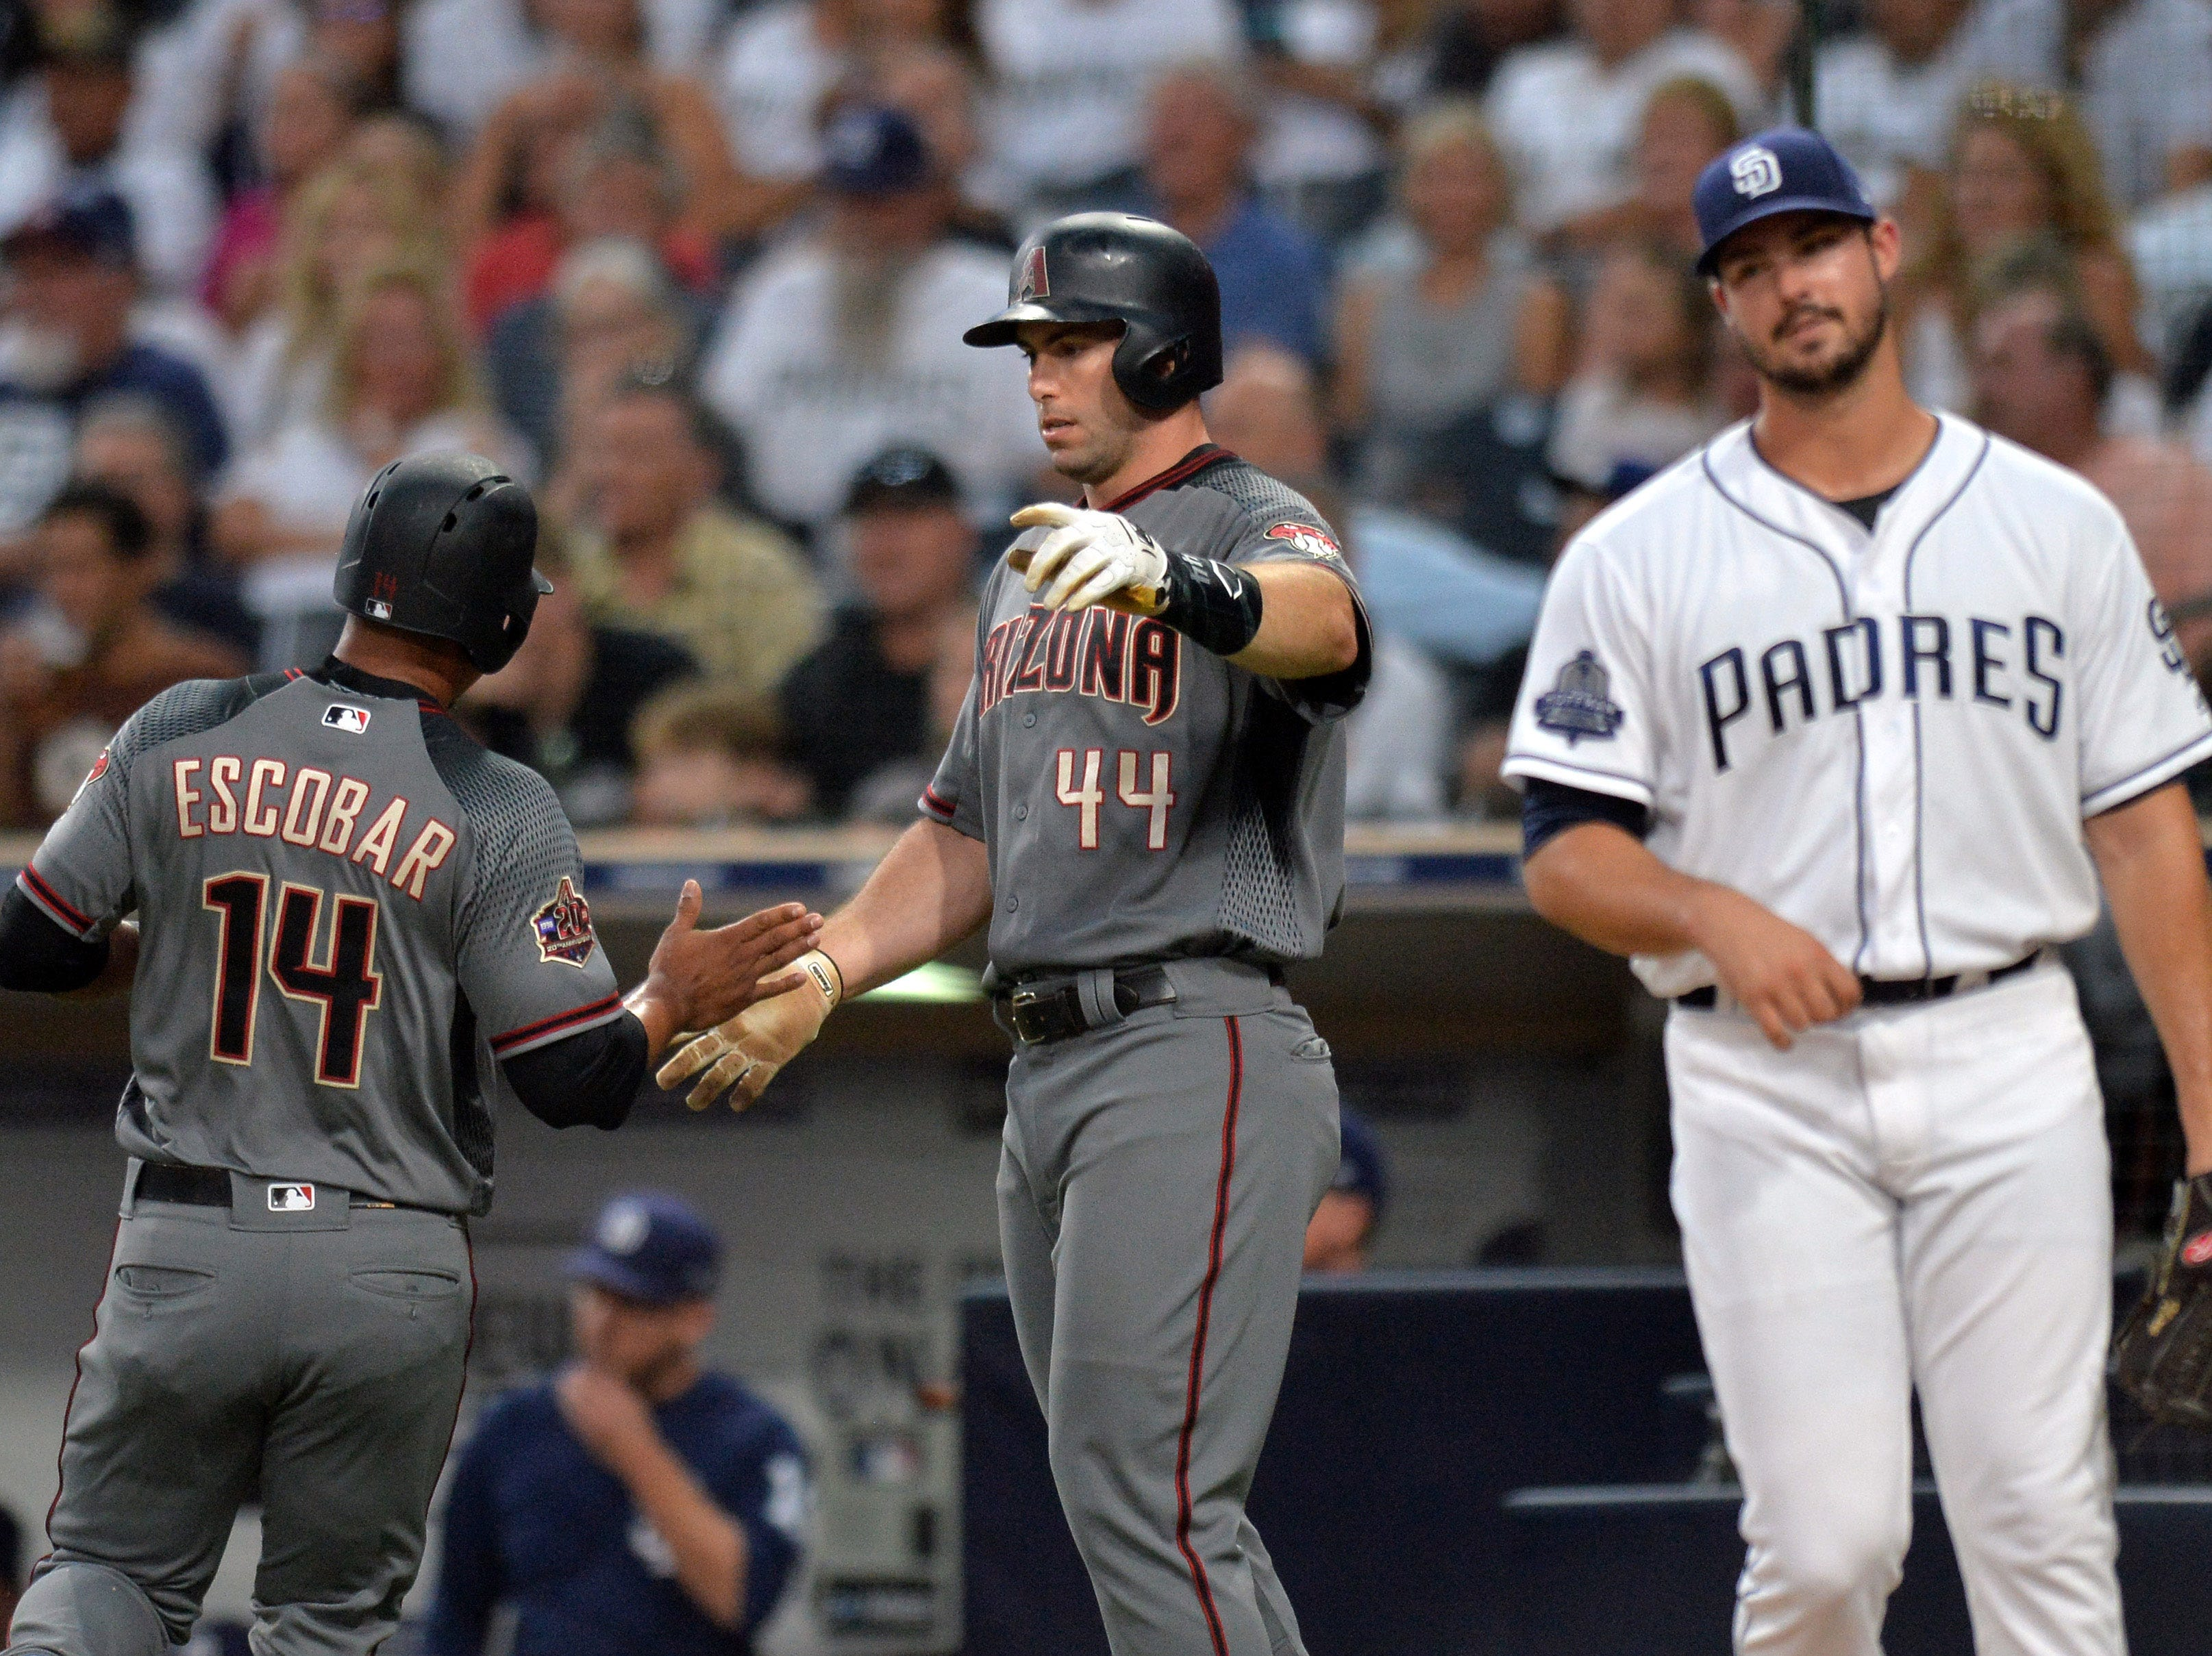 Aug 16, 2018; San Diego, CA, USA; Arizona Diamondbacks first baseman Paul Goldschmidt (44) and third baseman Eduardo Escobar (14) celebrate after scoring on a single by catcher Alex Avila (not pictured) during the first inning as San Diego Padres starting pitcher Jacob Nix (right) reacts at Petco Park. Mandatory Credit: Jake Roth-USA TODAY Sports